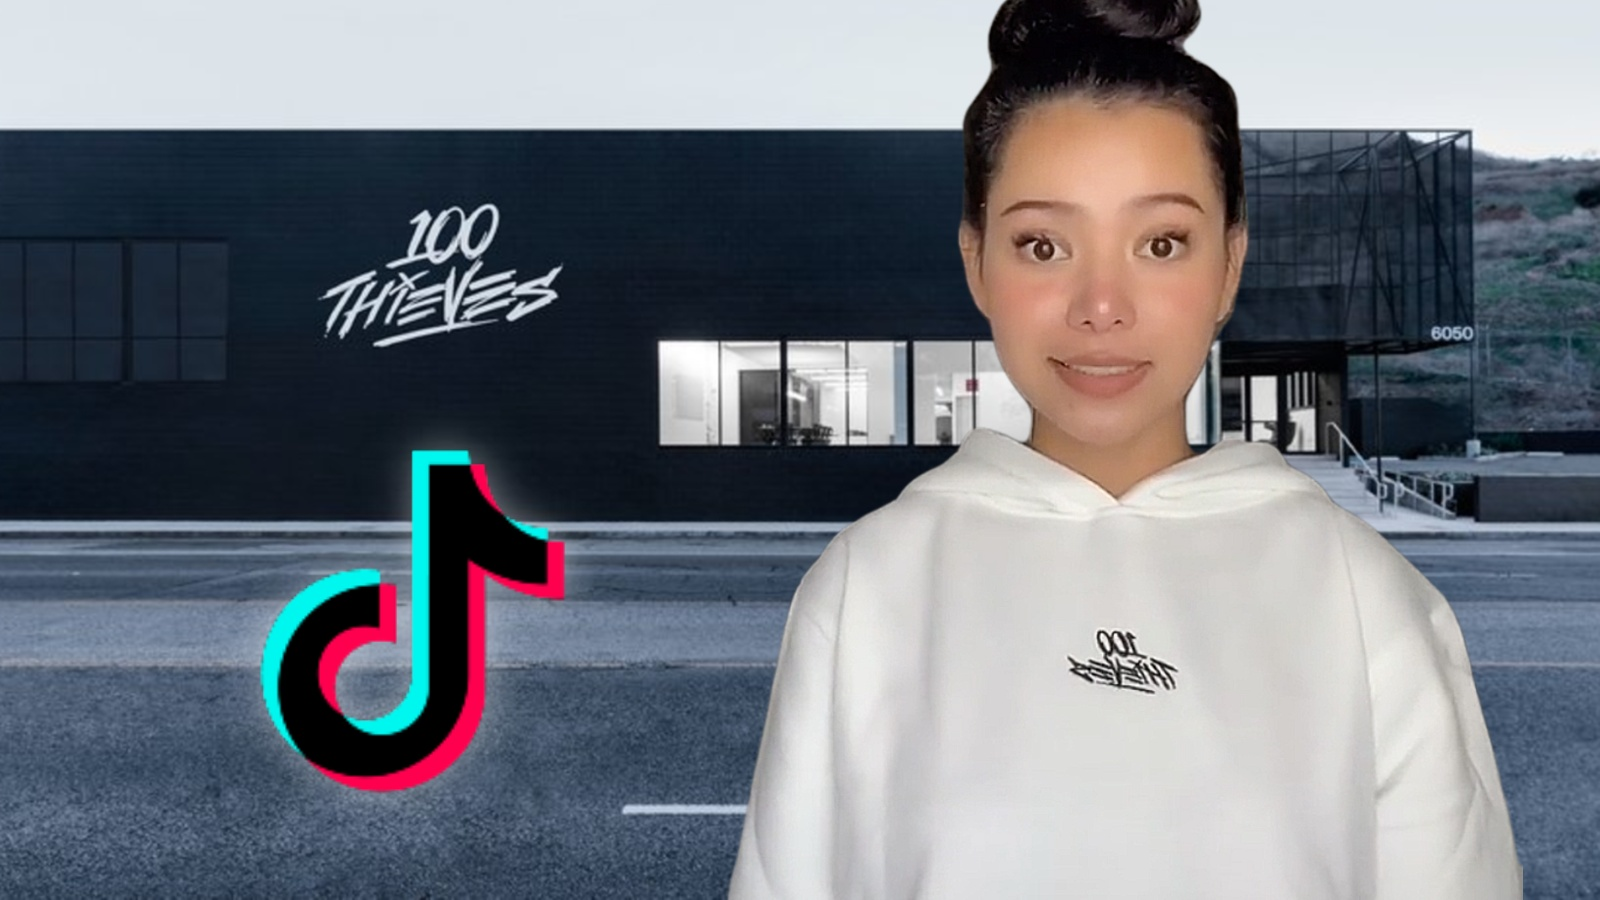 Bella Poarch is pictured next to the TikTok Logo and the 100 Thieves Cashapp Compound.